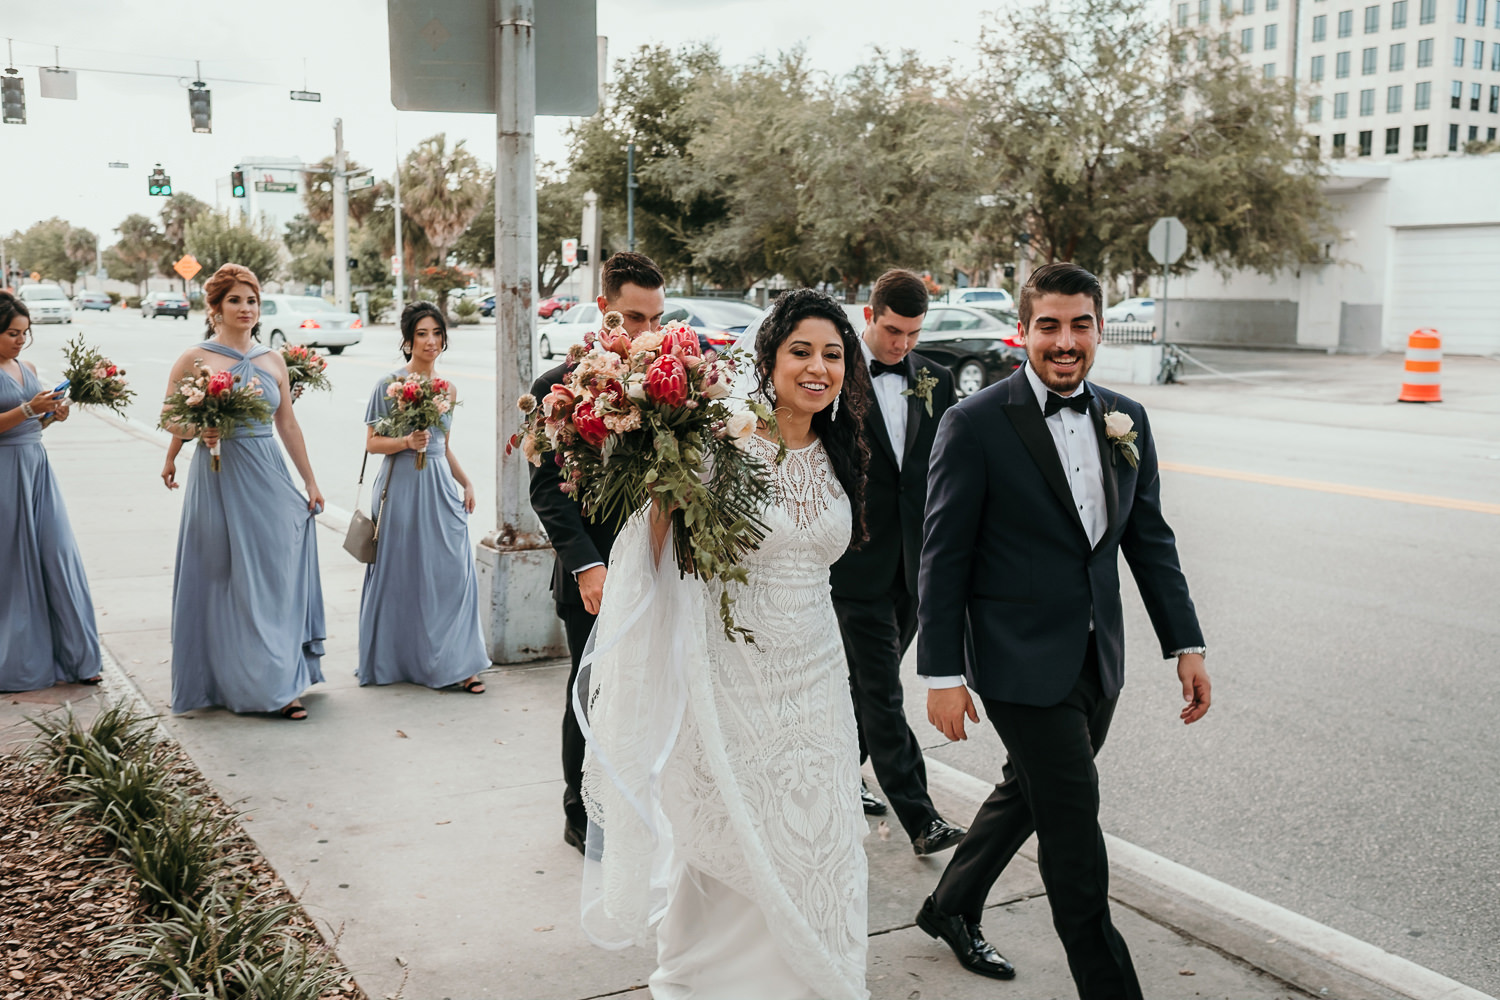 bridal party walking laughing on sidewalk